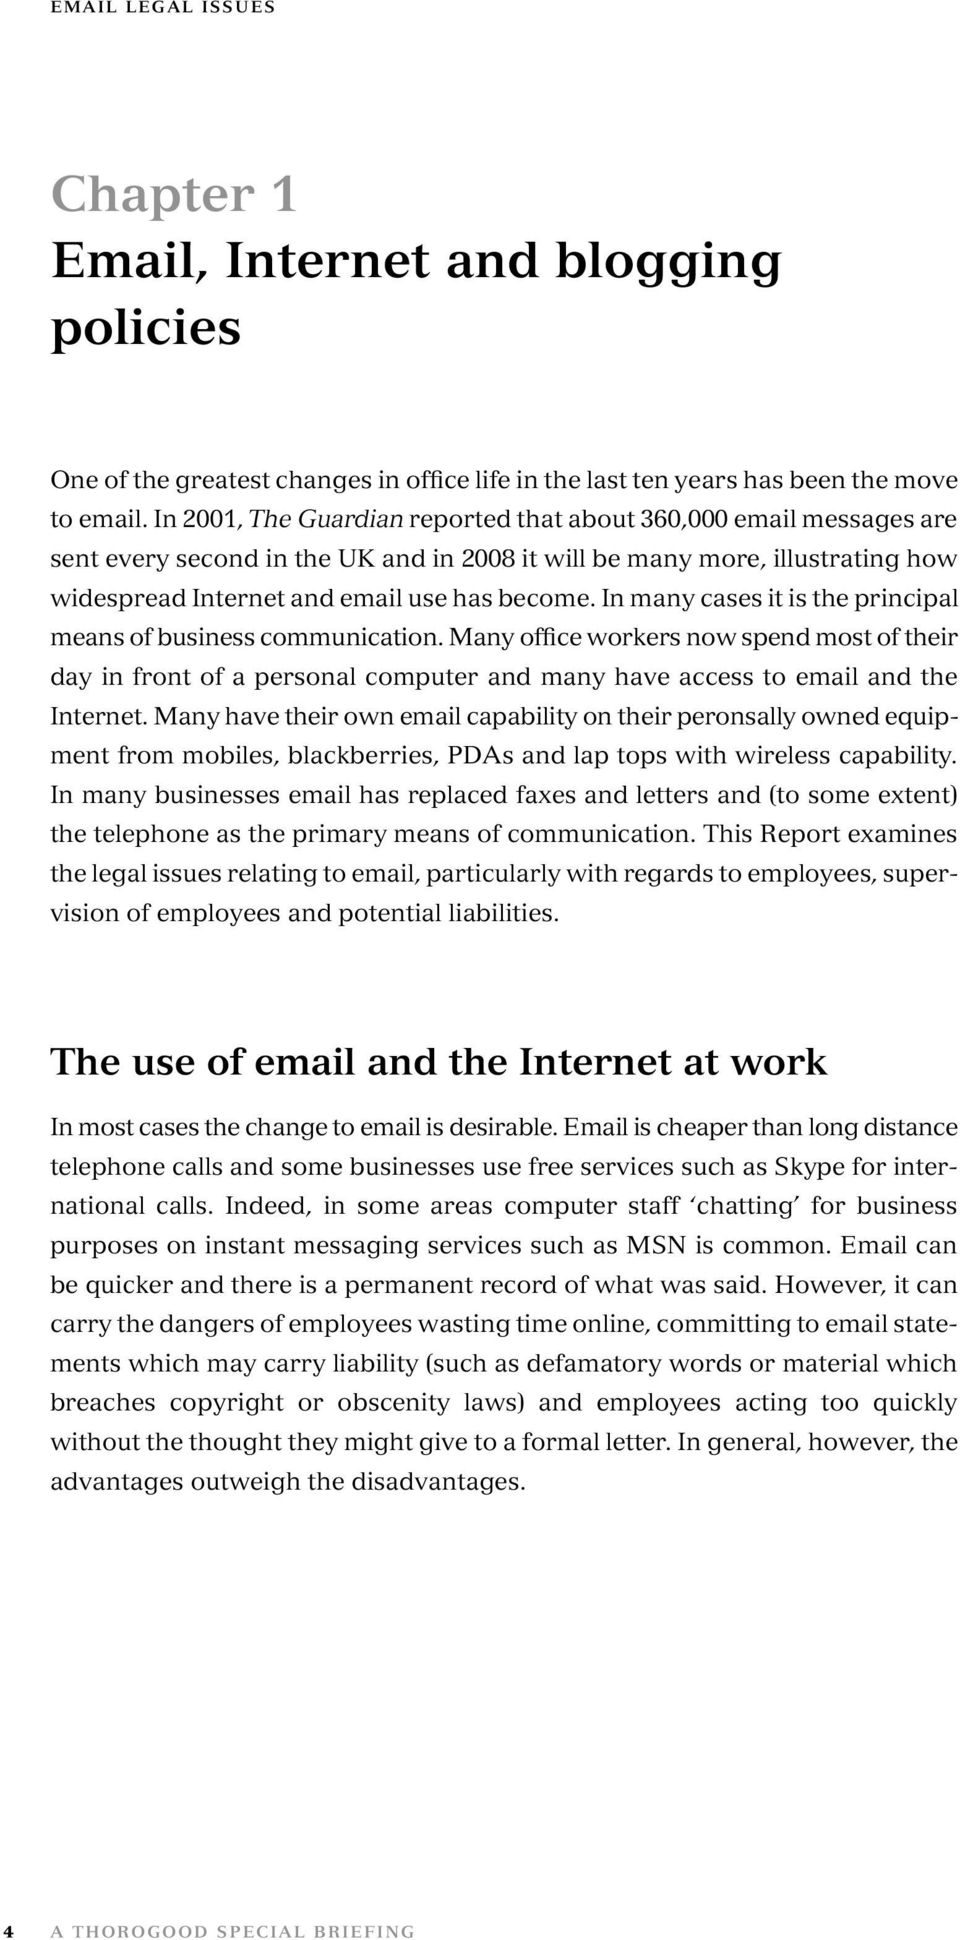 In many cases it is the principal means of business communication. Many office workers now spend most of their day in front of a personal computer and many have access to email and the Internet.